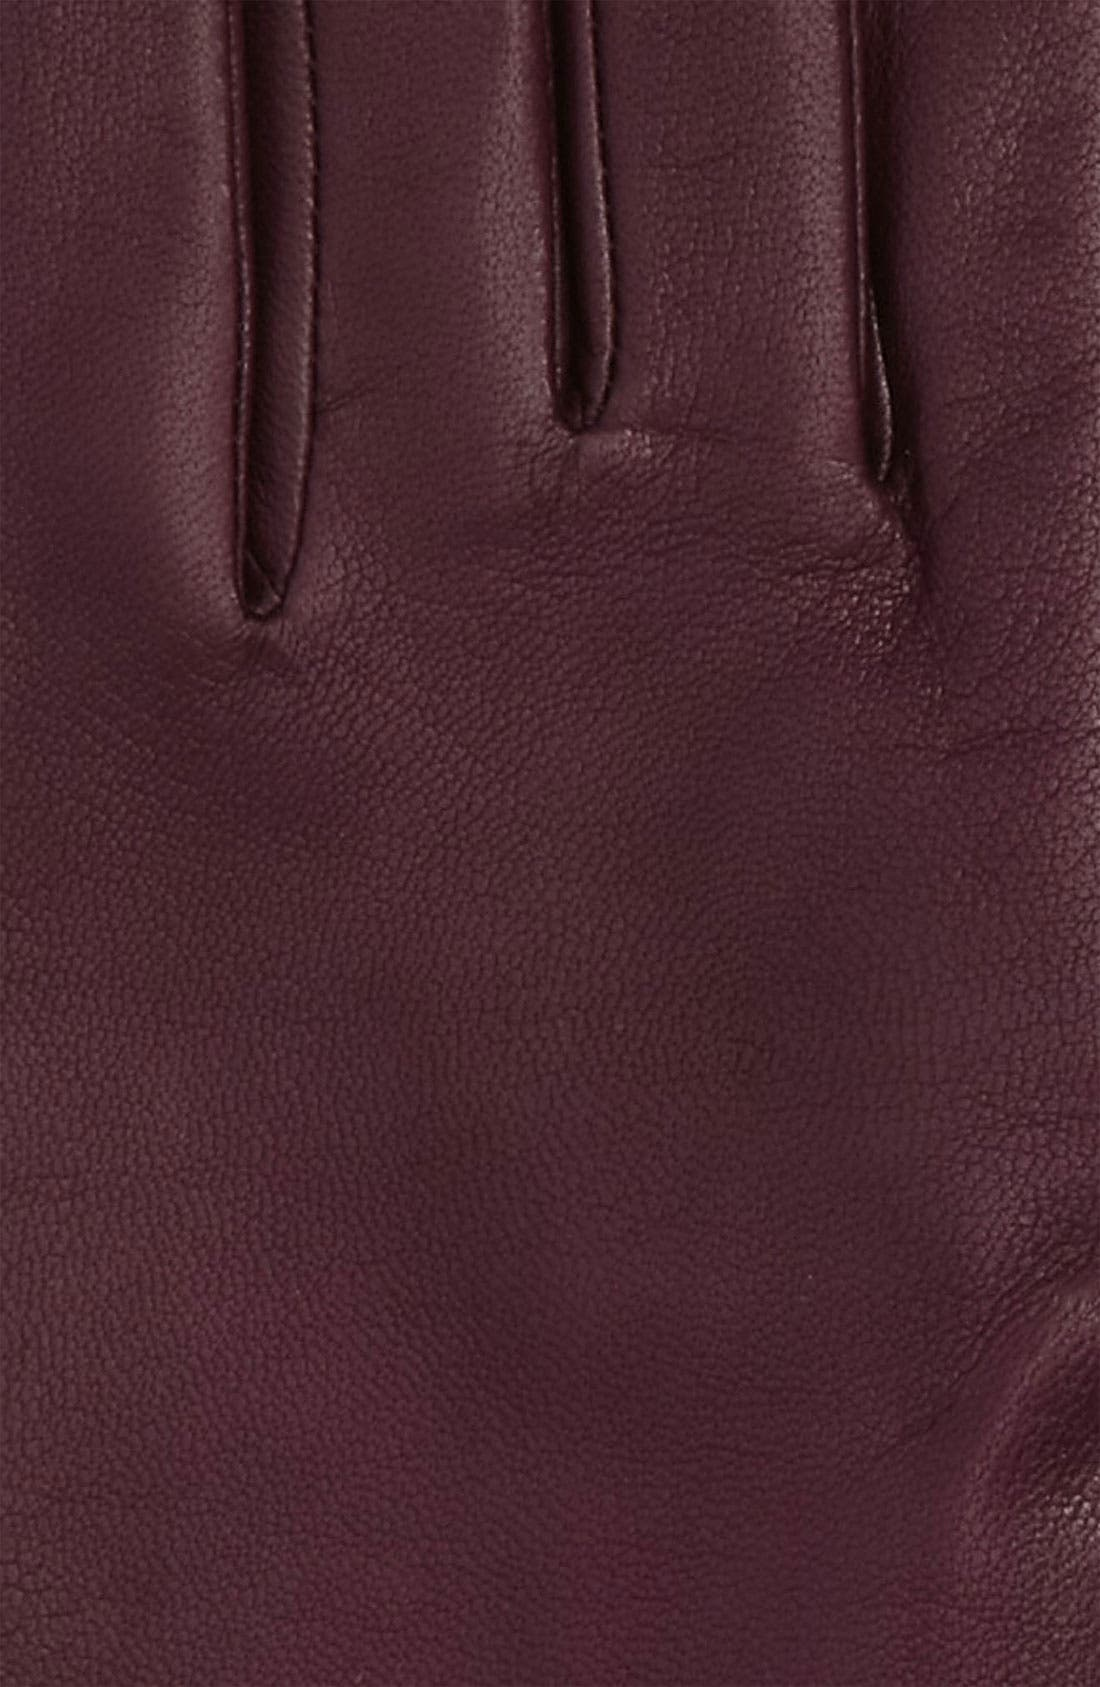 'Basic Tech' Cashmere Lined Leather Gloves,                             Main thumbnail 5, color,